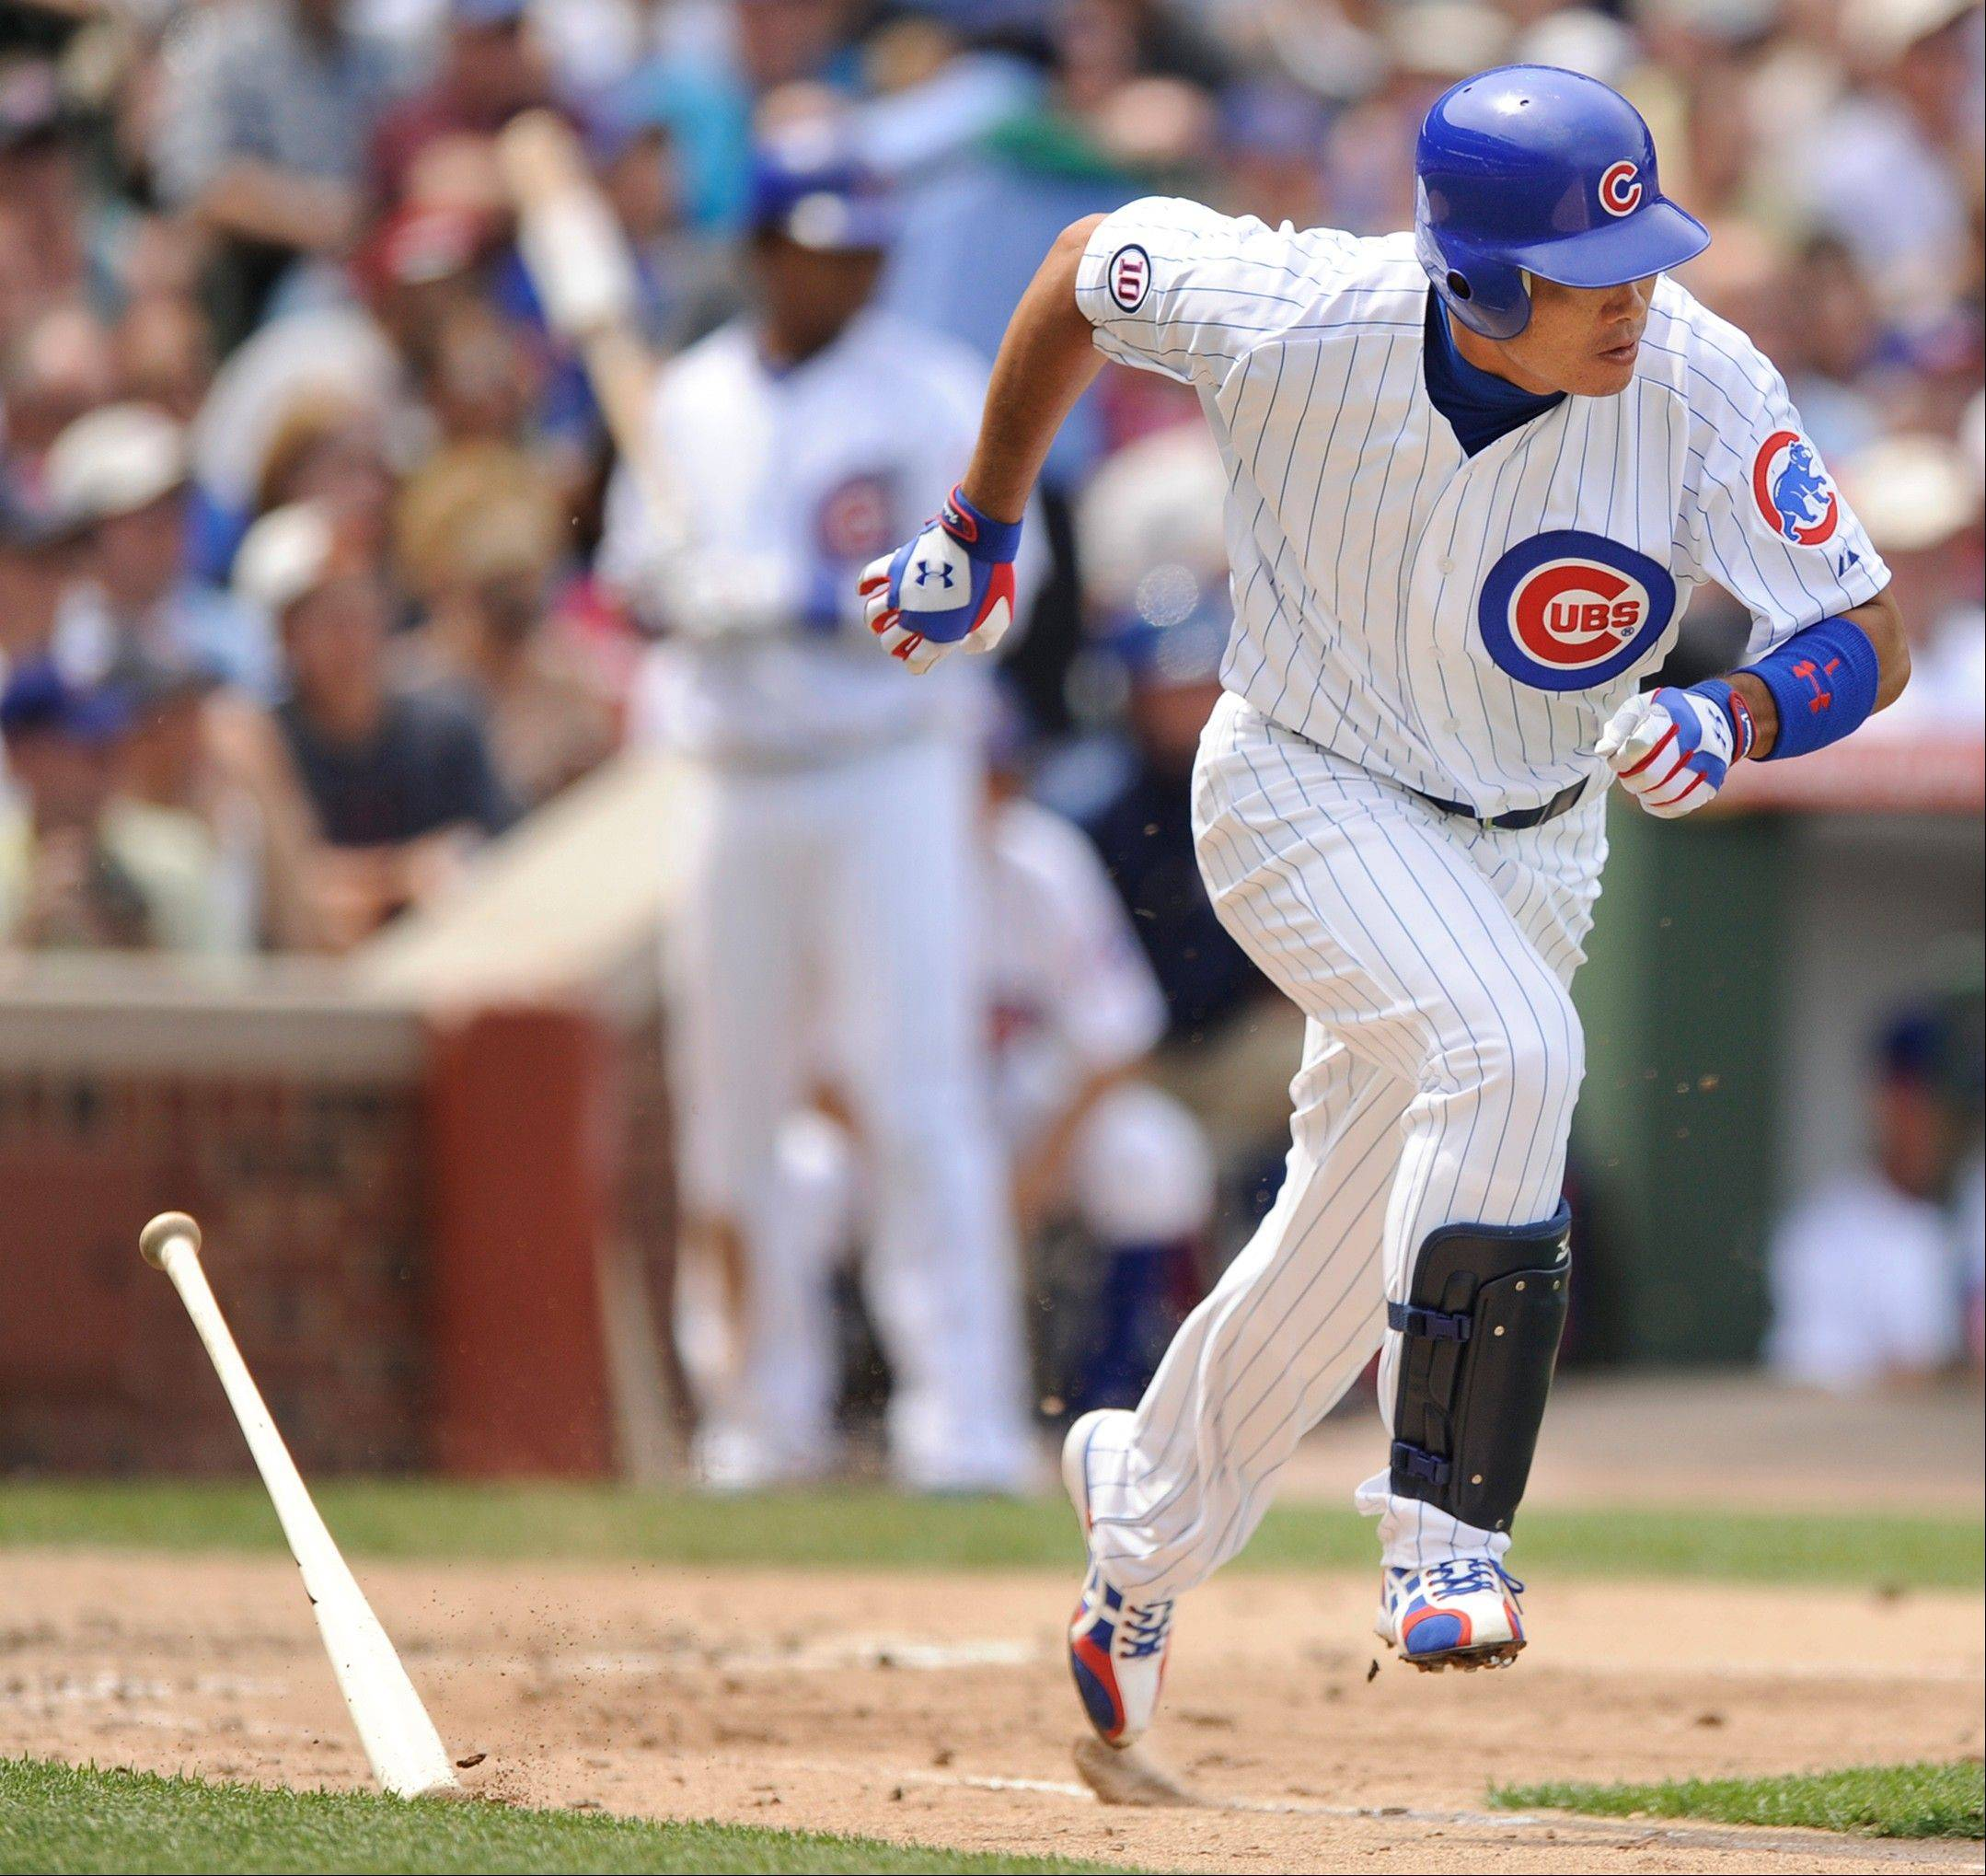 Kosuke Fukudome runs to first base after hitting a single against the Florida Marlins in the third inning on Friday.